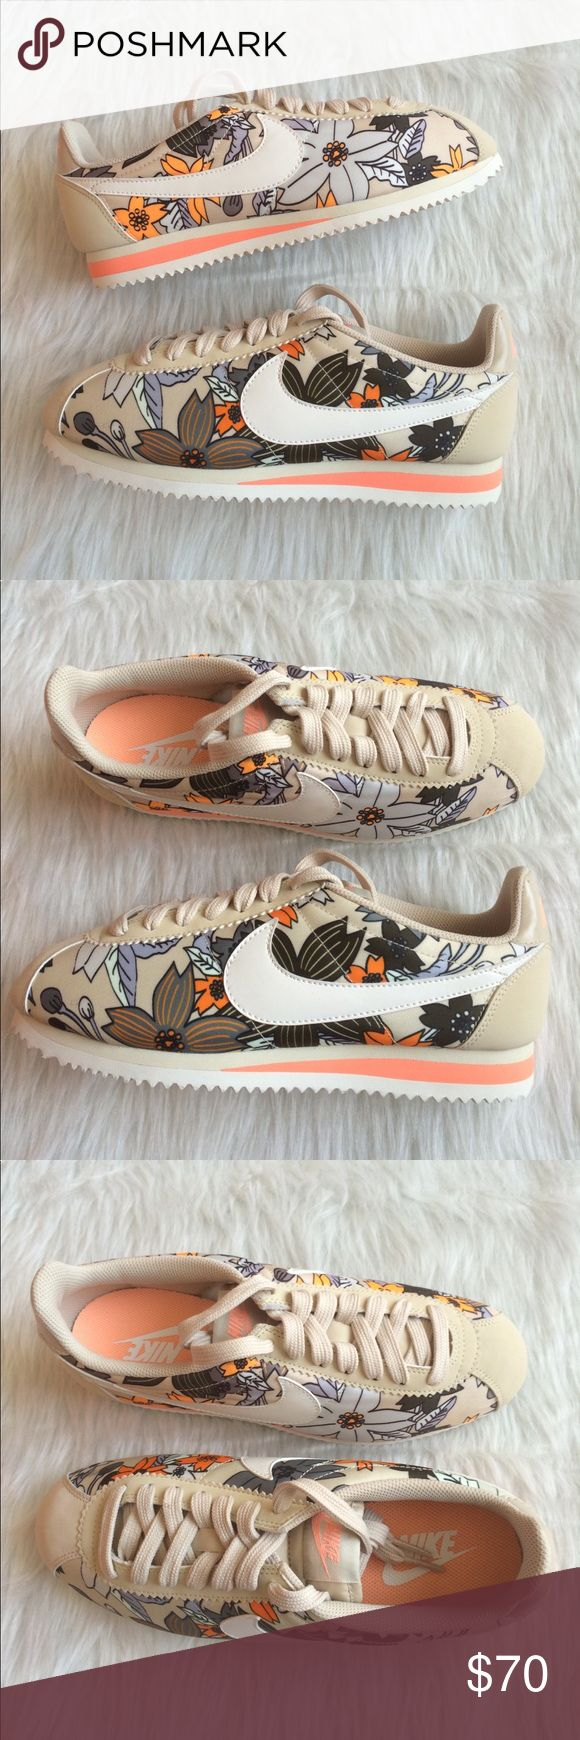 NIKE CORTEZ WOMENS FLORAL PREMIUM Brand new without box. Ships same day or very next. 100% authentic. Comment if you have any questions before purchasing. WOMENS. Nike Shoes Sneakers